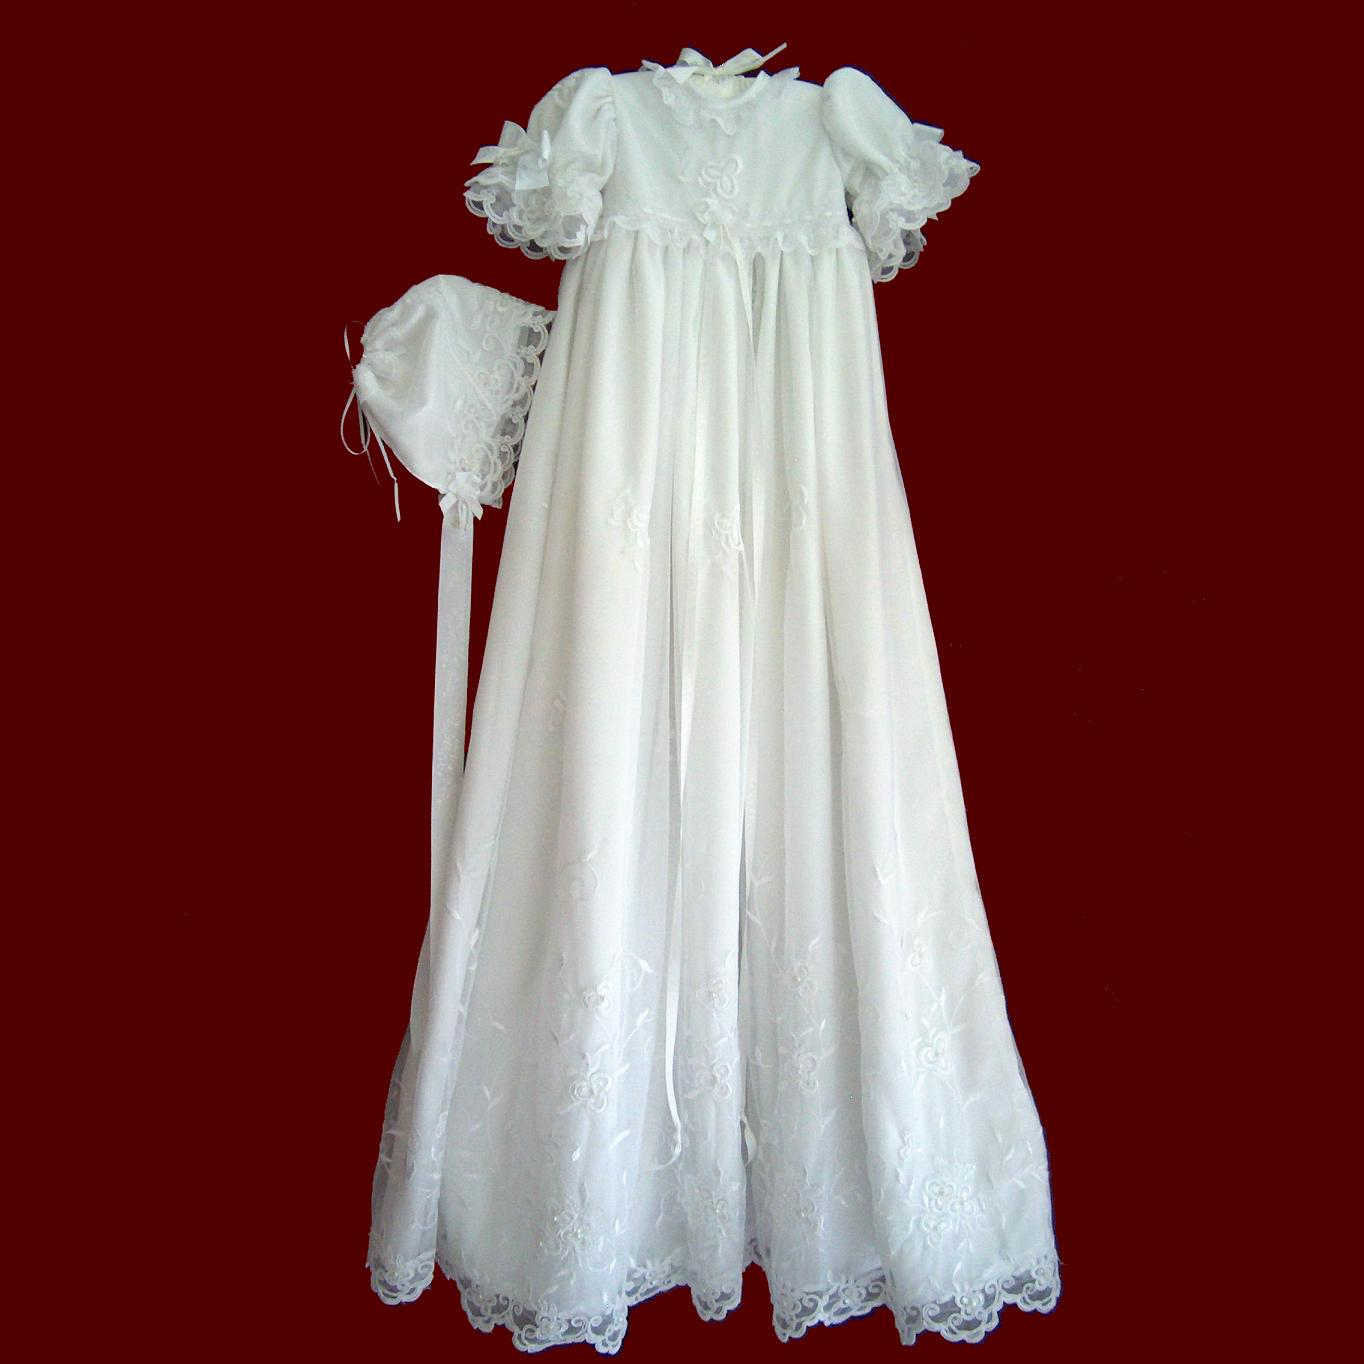 Christening Gowns From Wedding Dresses: Beaded And Embroidered Netting Girls Designer Christening